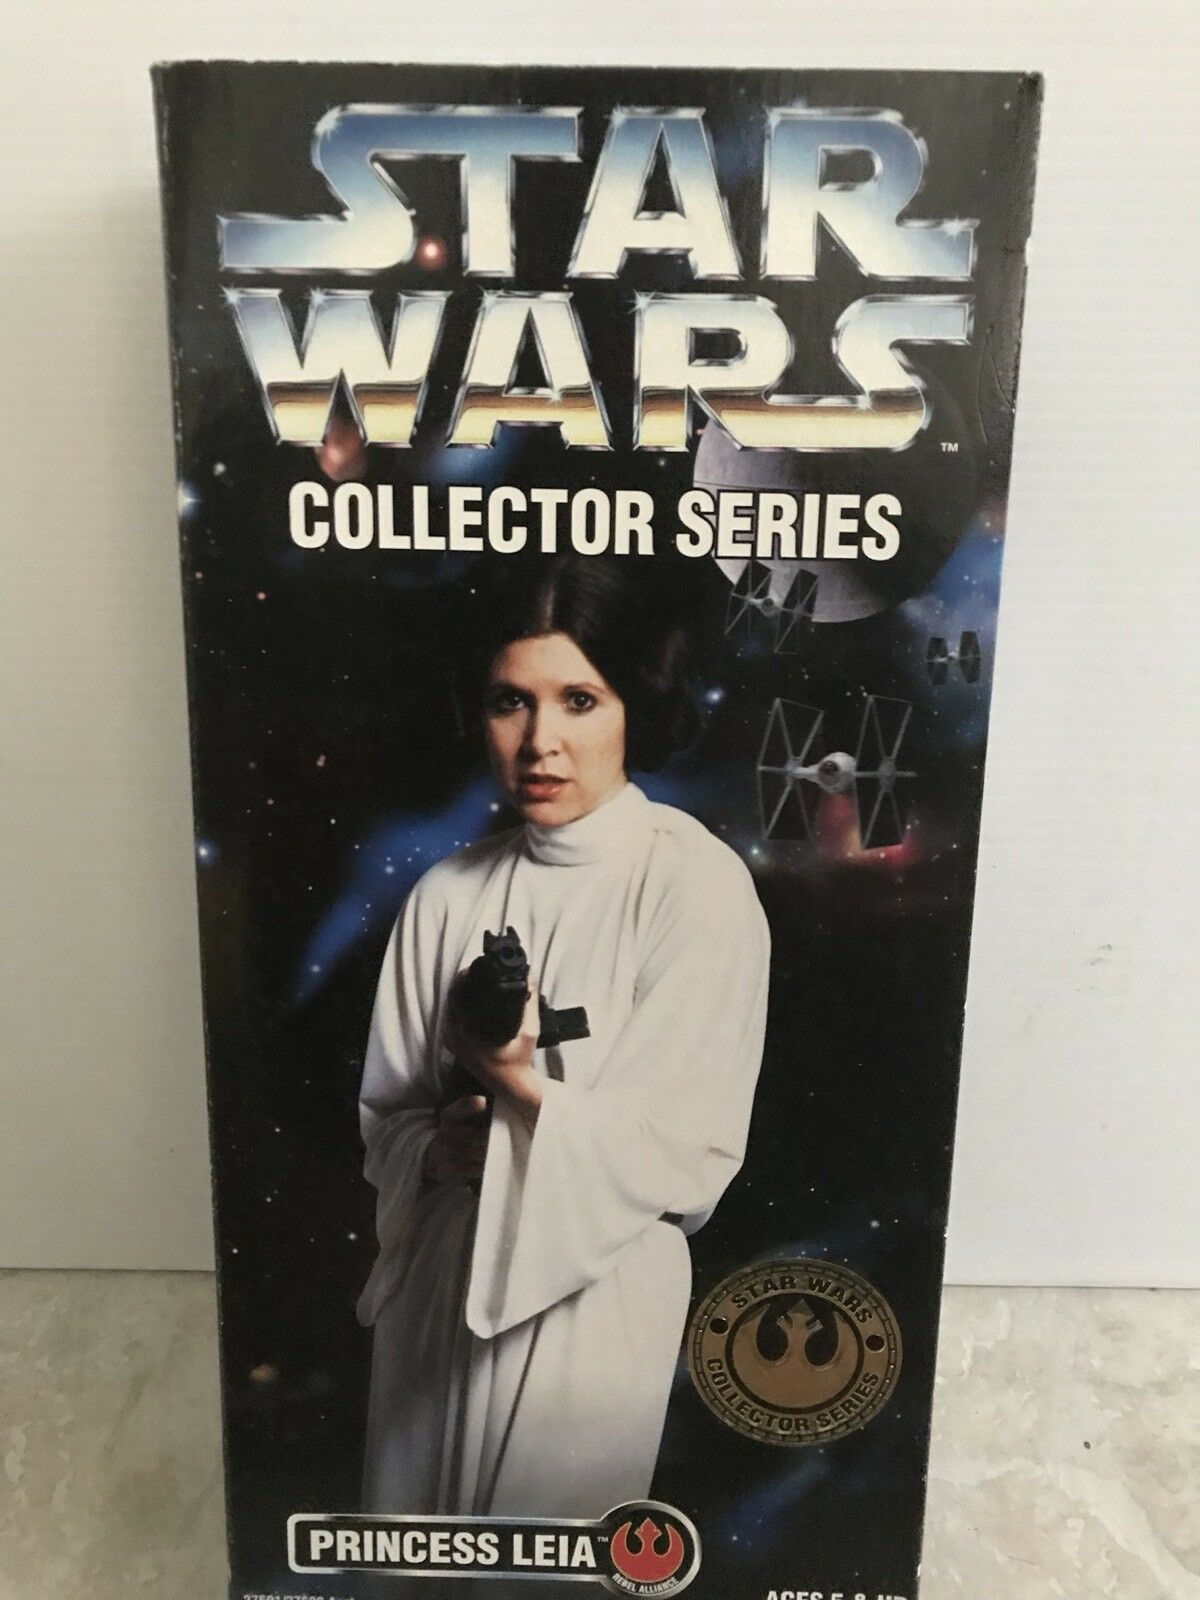 Star Wars Collector Series Princess Leia 12  Doll by Kenner